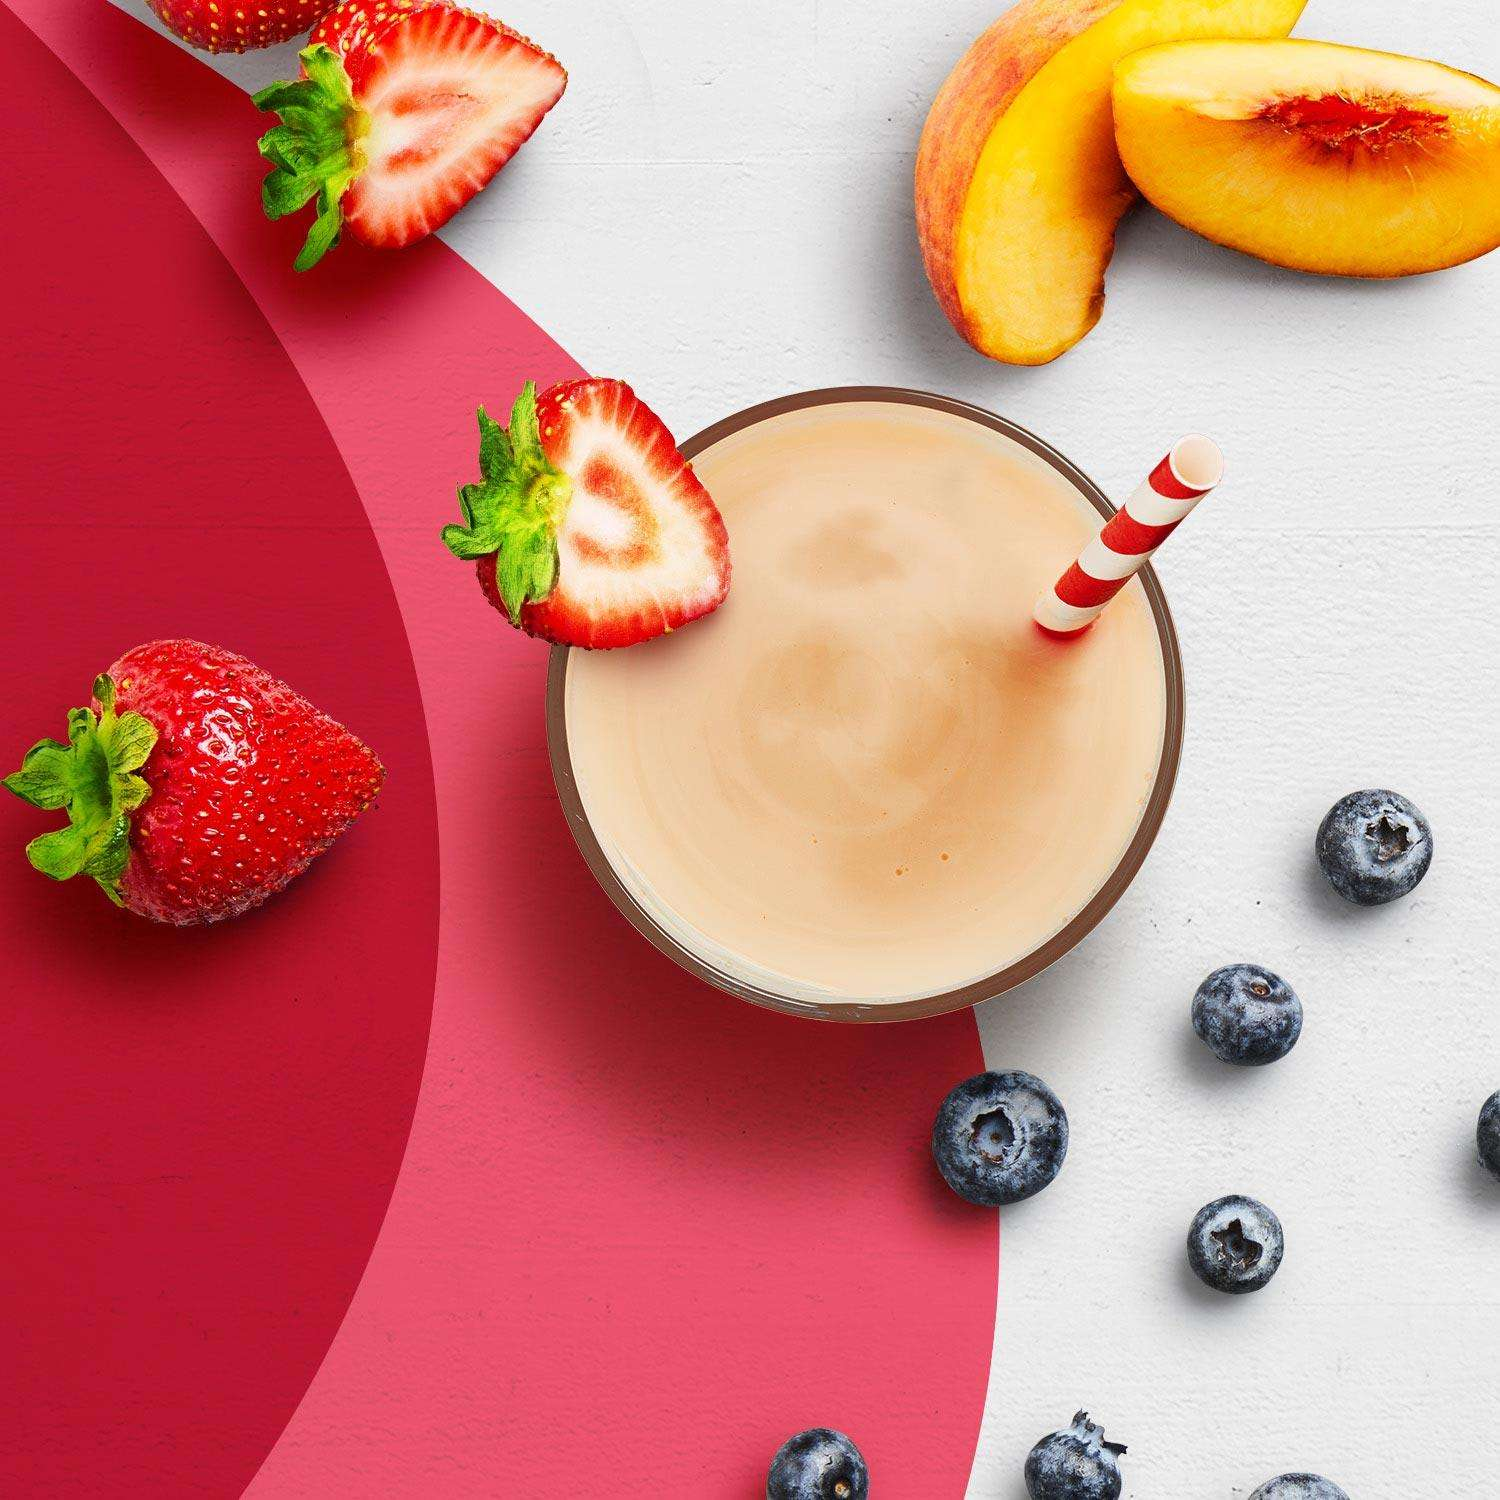 A strawberries and cream Premier Protein shake next to strawberries, peaches and blueberries.